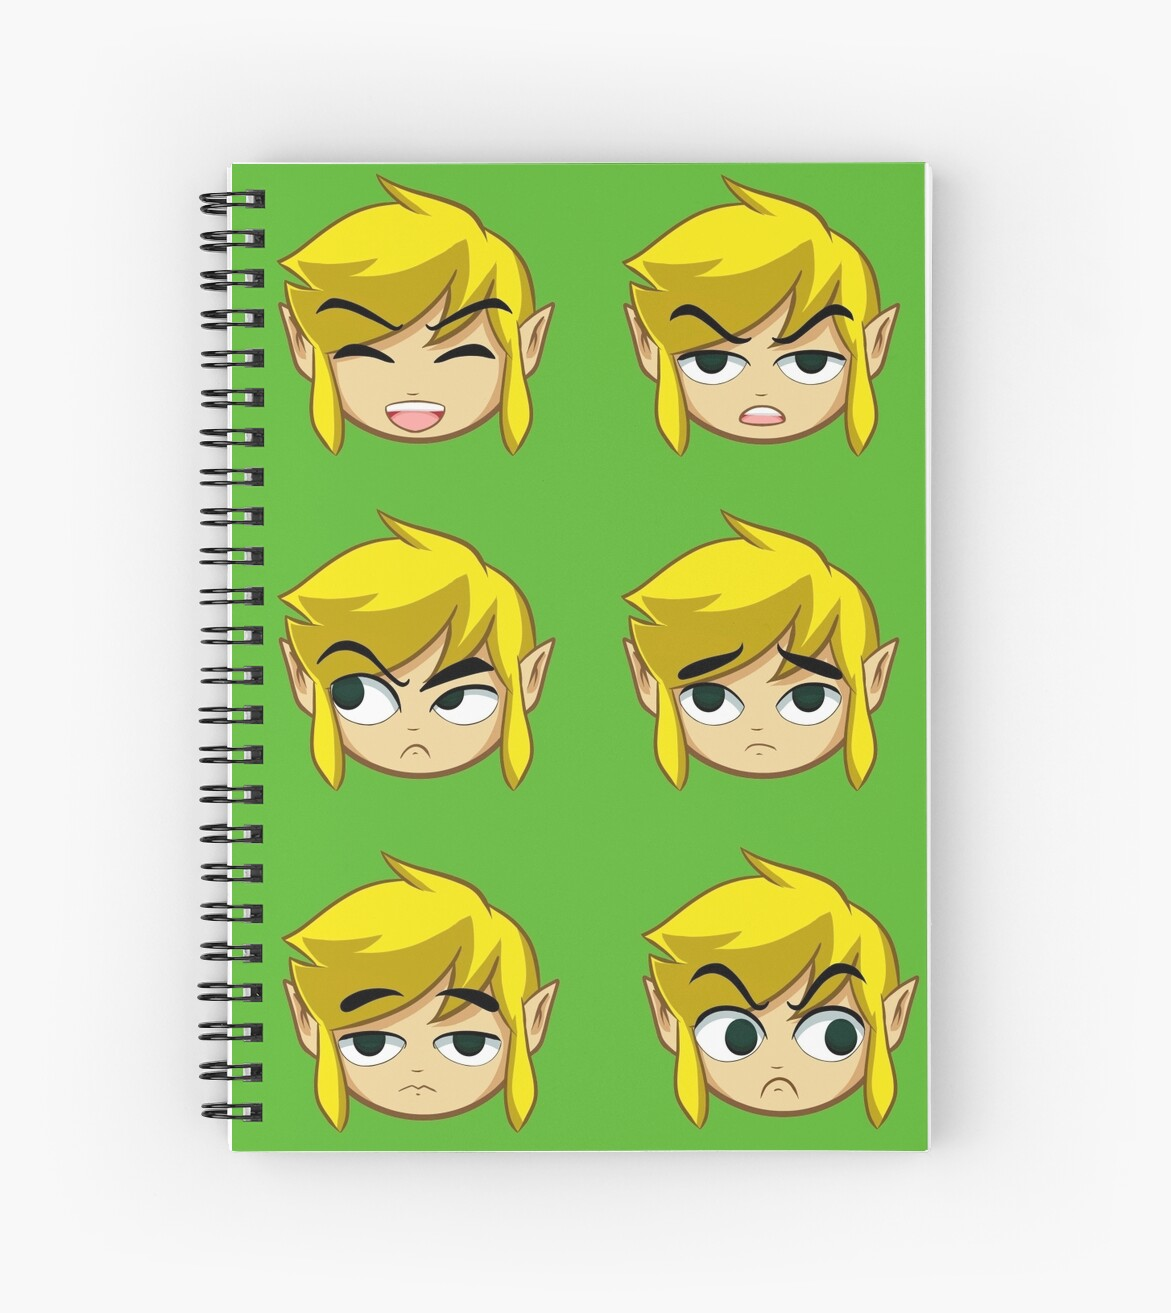 Toon Link Expressions\